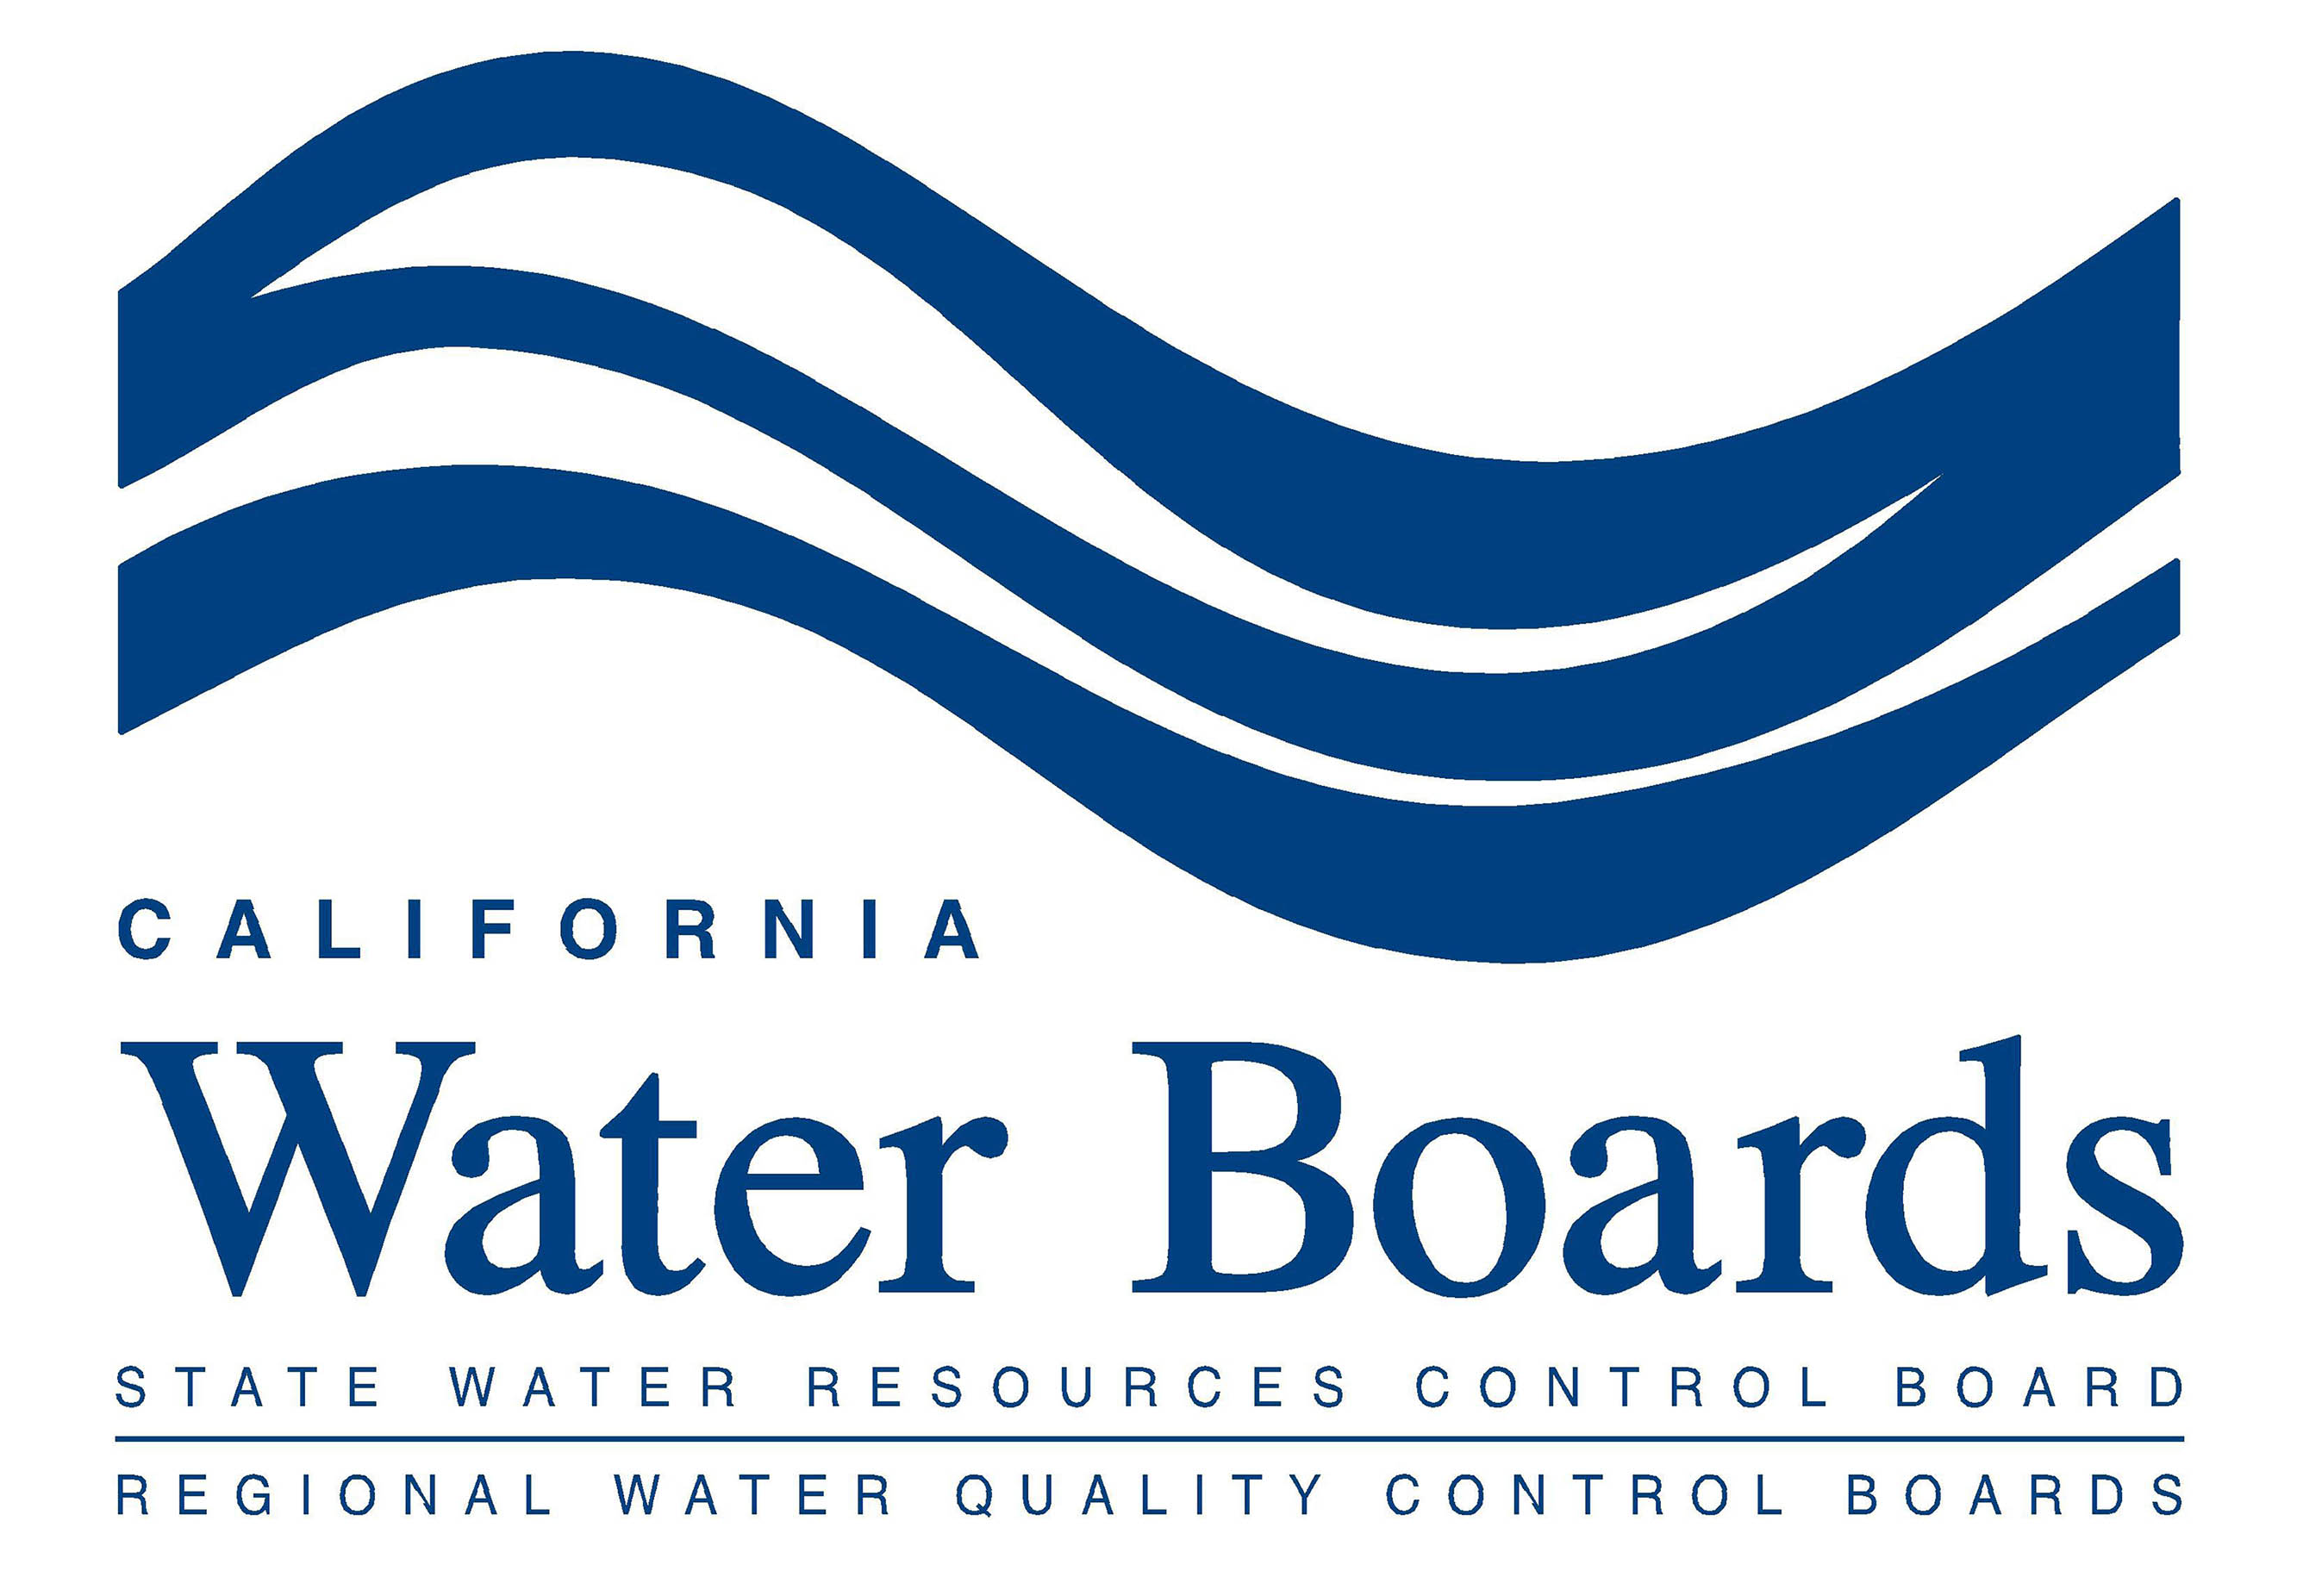 California State Water Resources Control Board logo